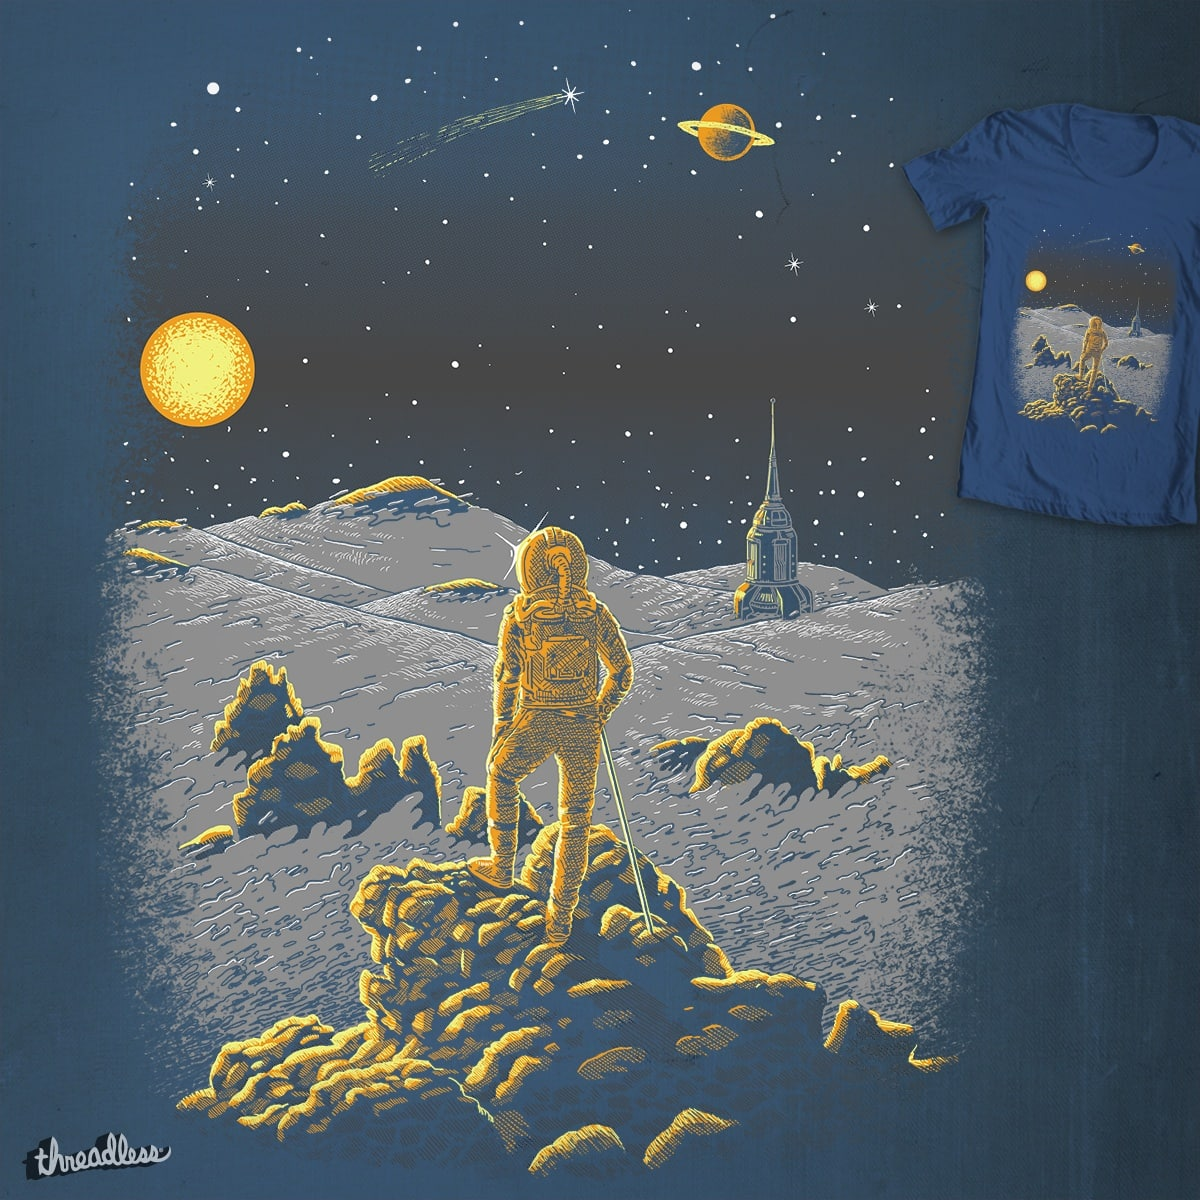 Space wanderer above the Sea of Fog by c-royal on Threadless